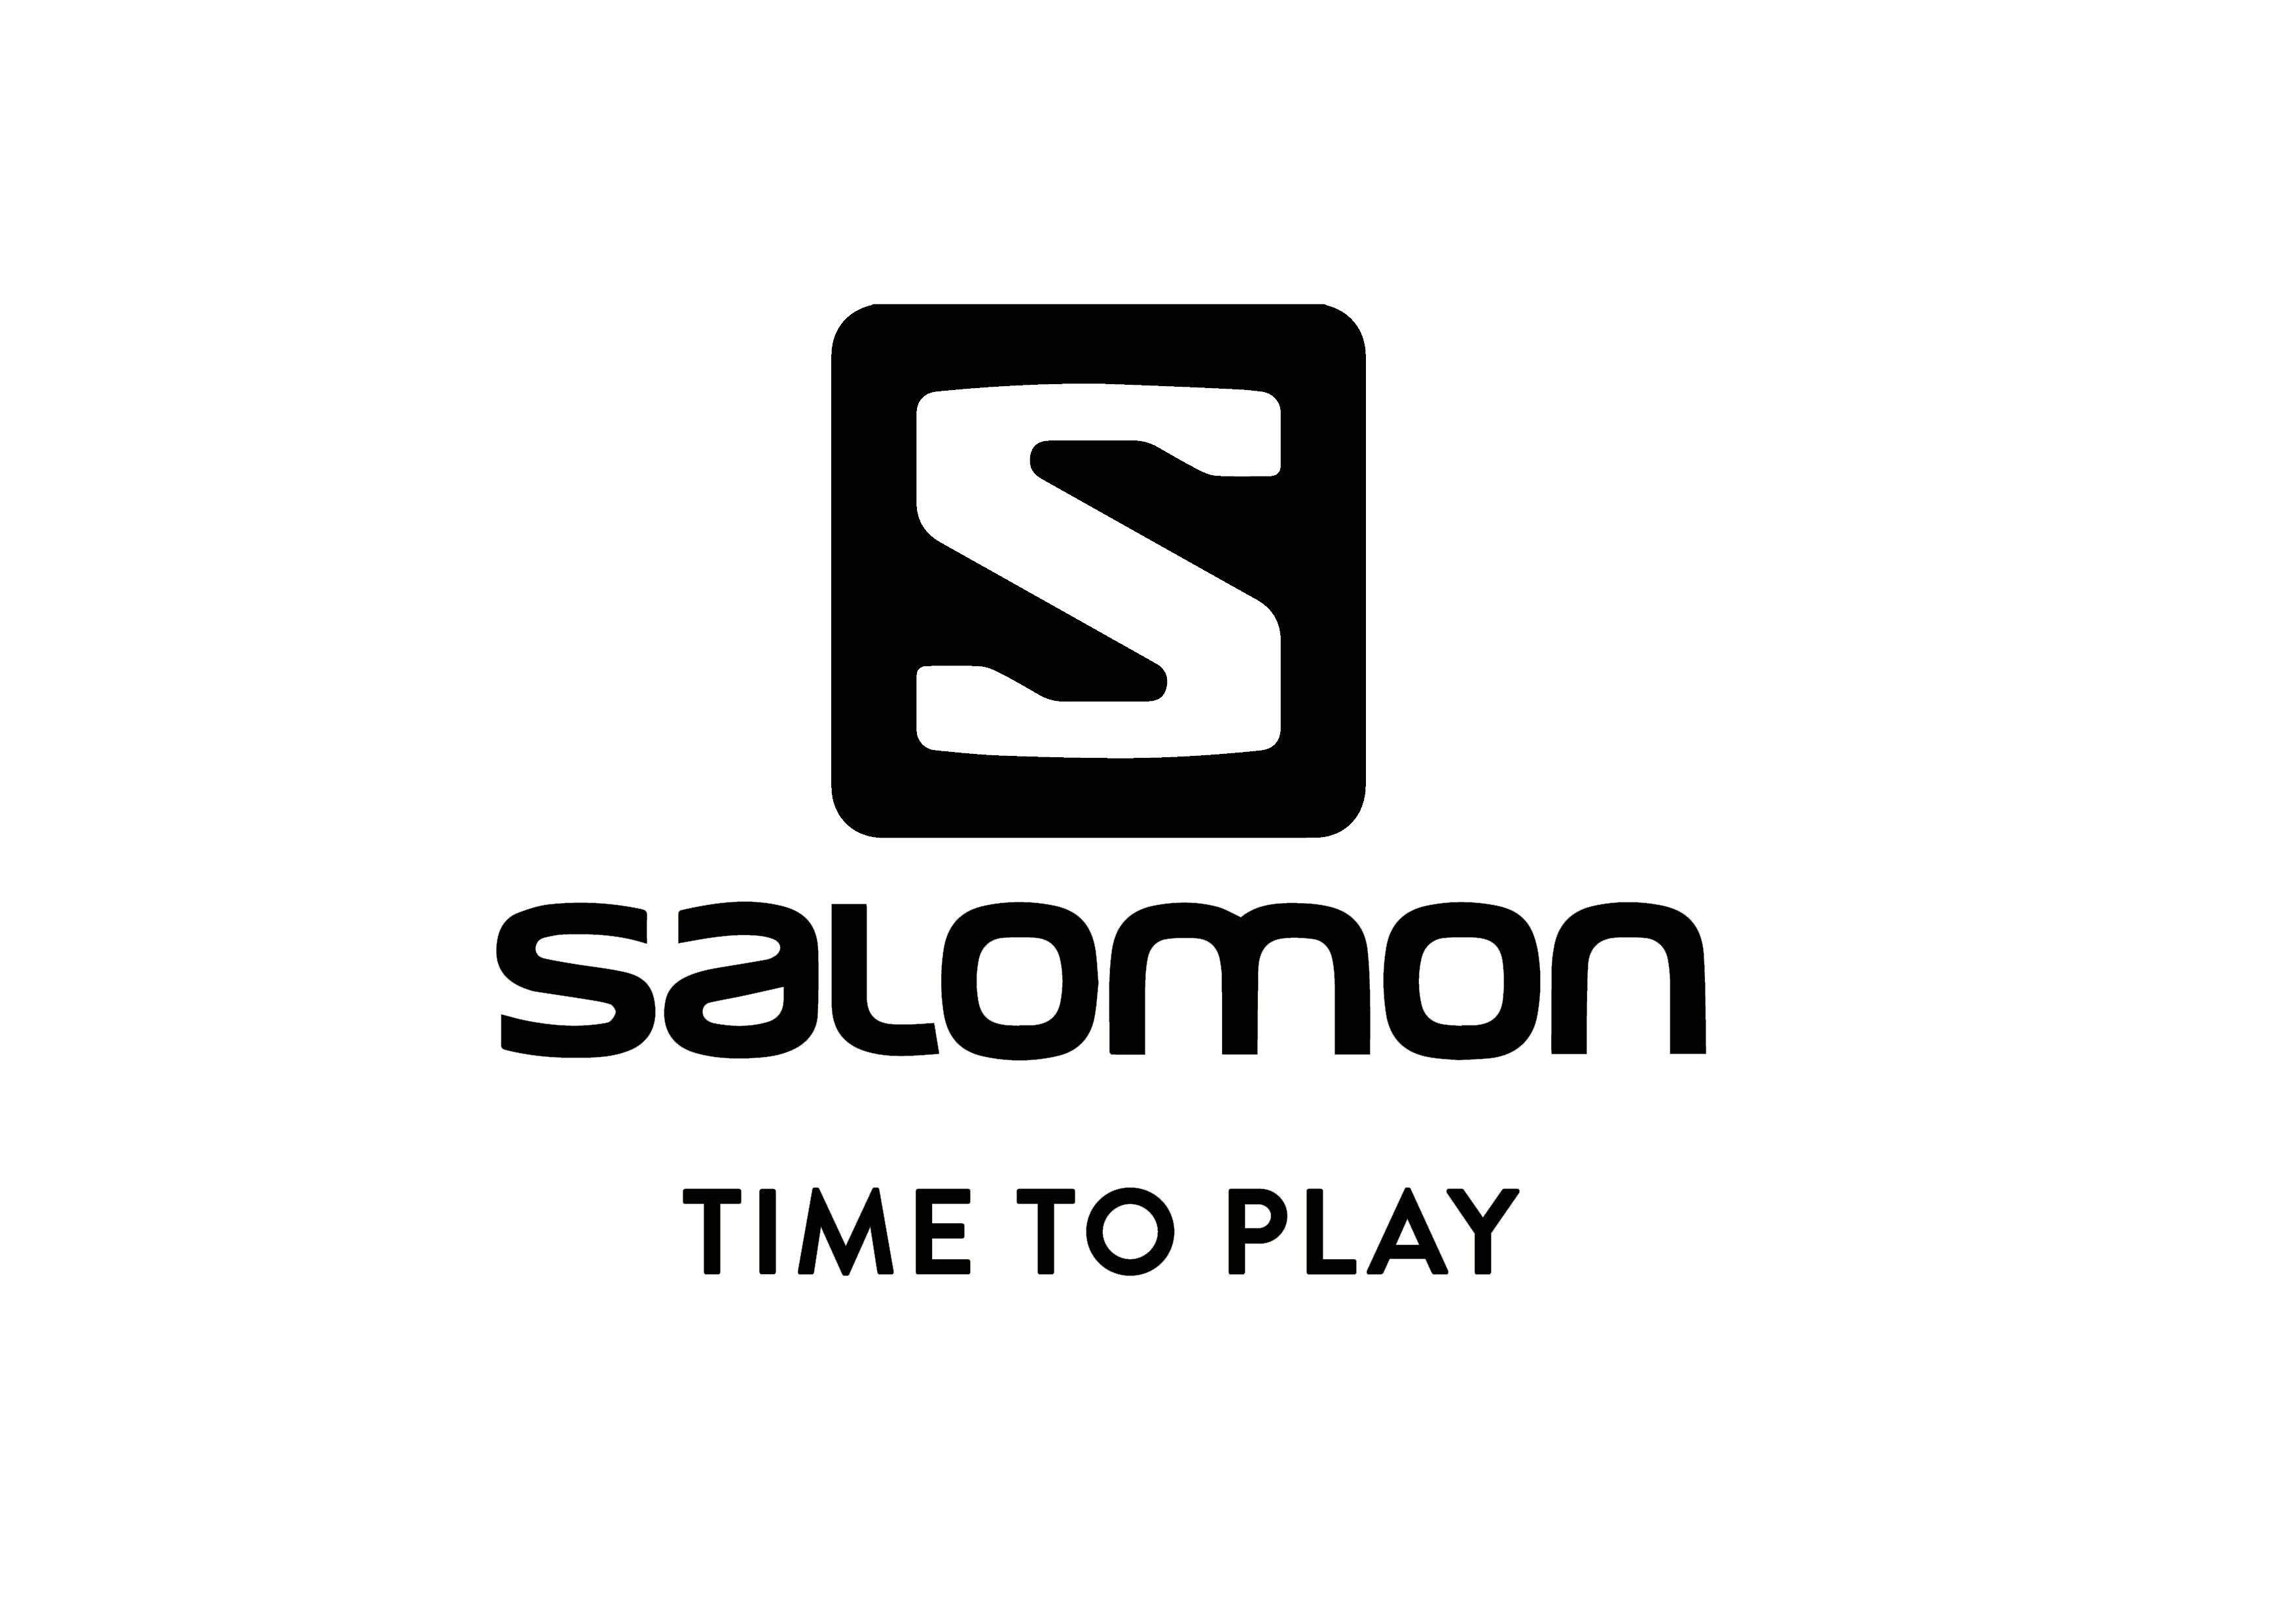 logo-Salomon time to play_BLACK